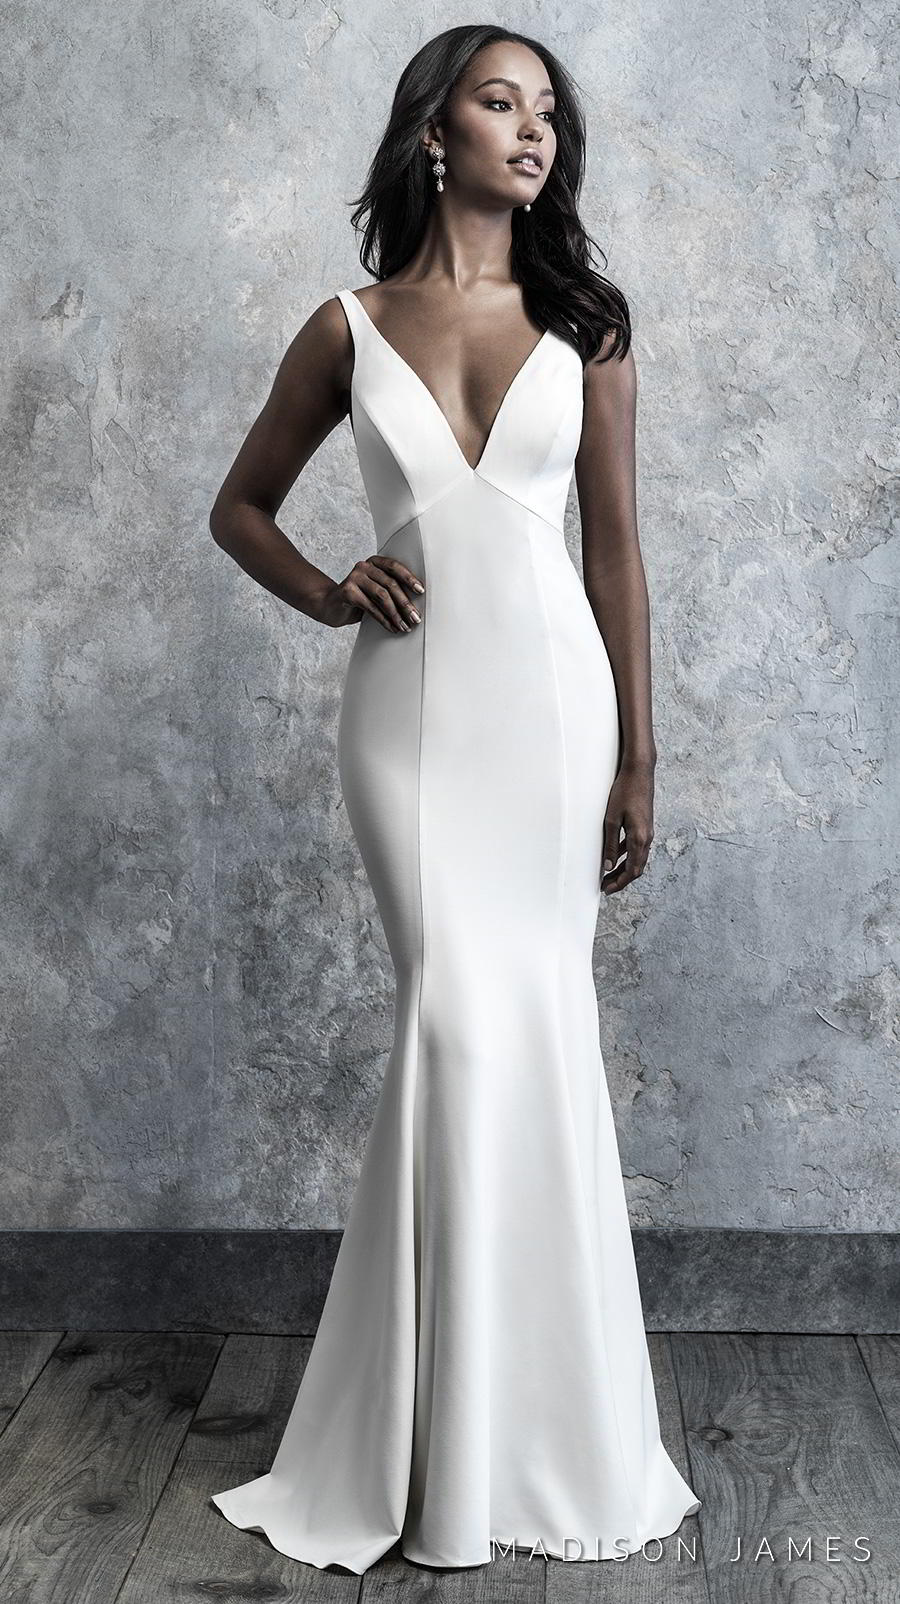 Madison James 2019 Bridal Sleeveless With Strap Deep V Neck Simple